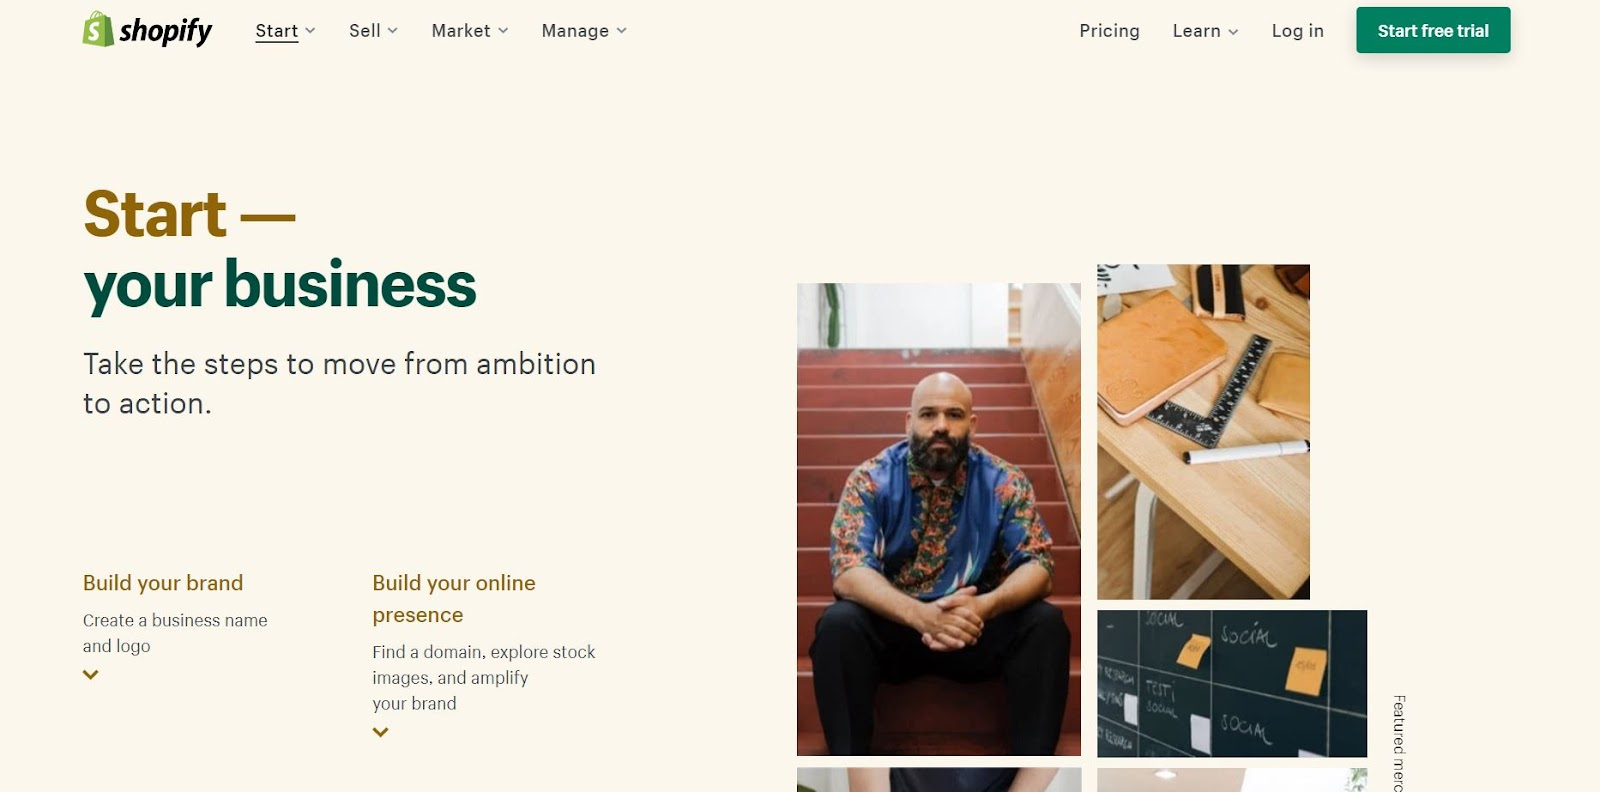 Shopify: The Top 10 Website Platforms for Woodworkers and Makers